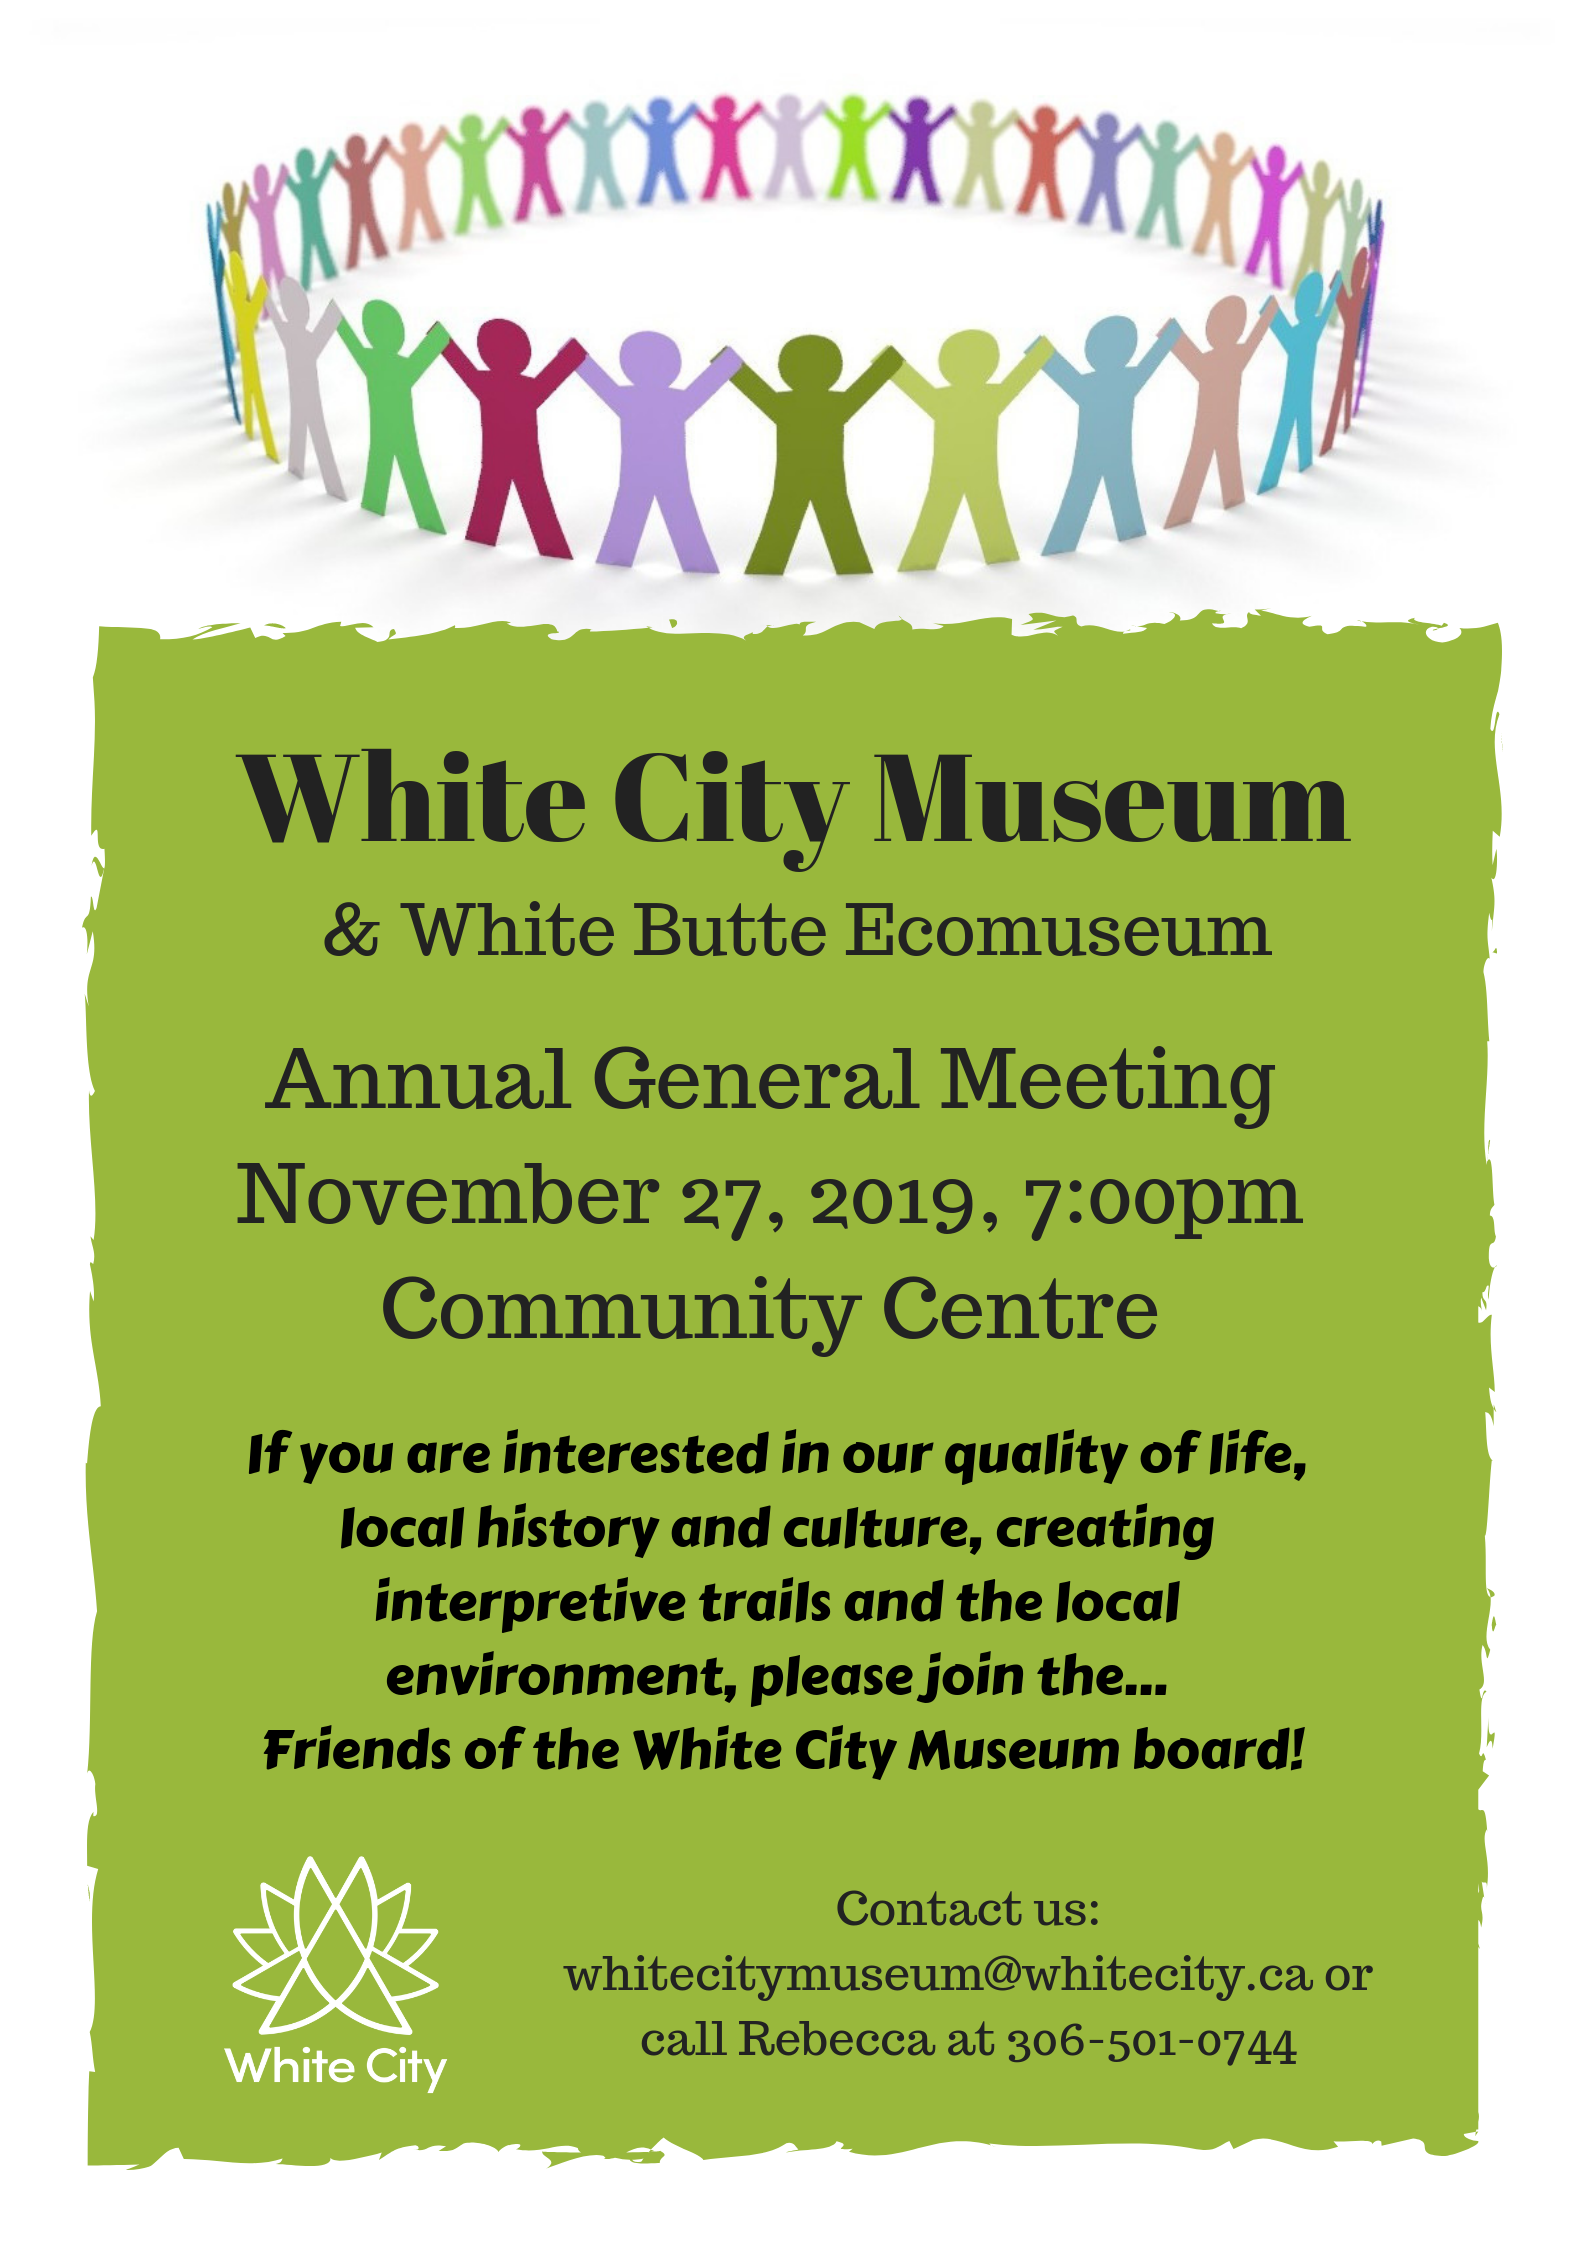 AGM for the White City Museum & White Butte Ecomuseum